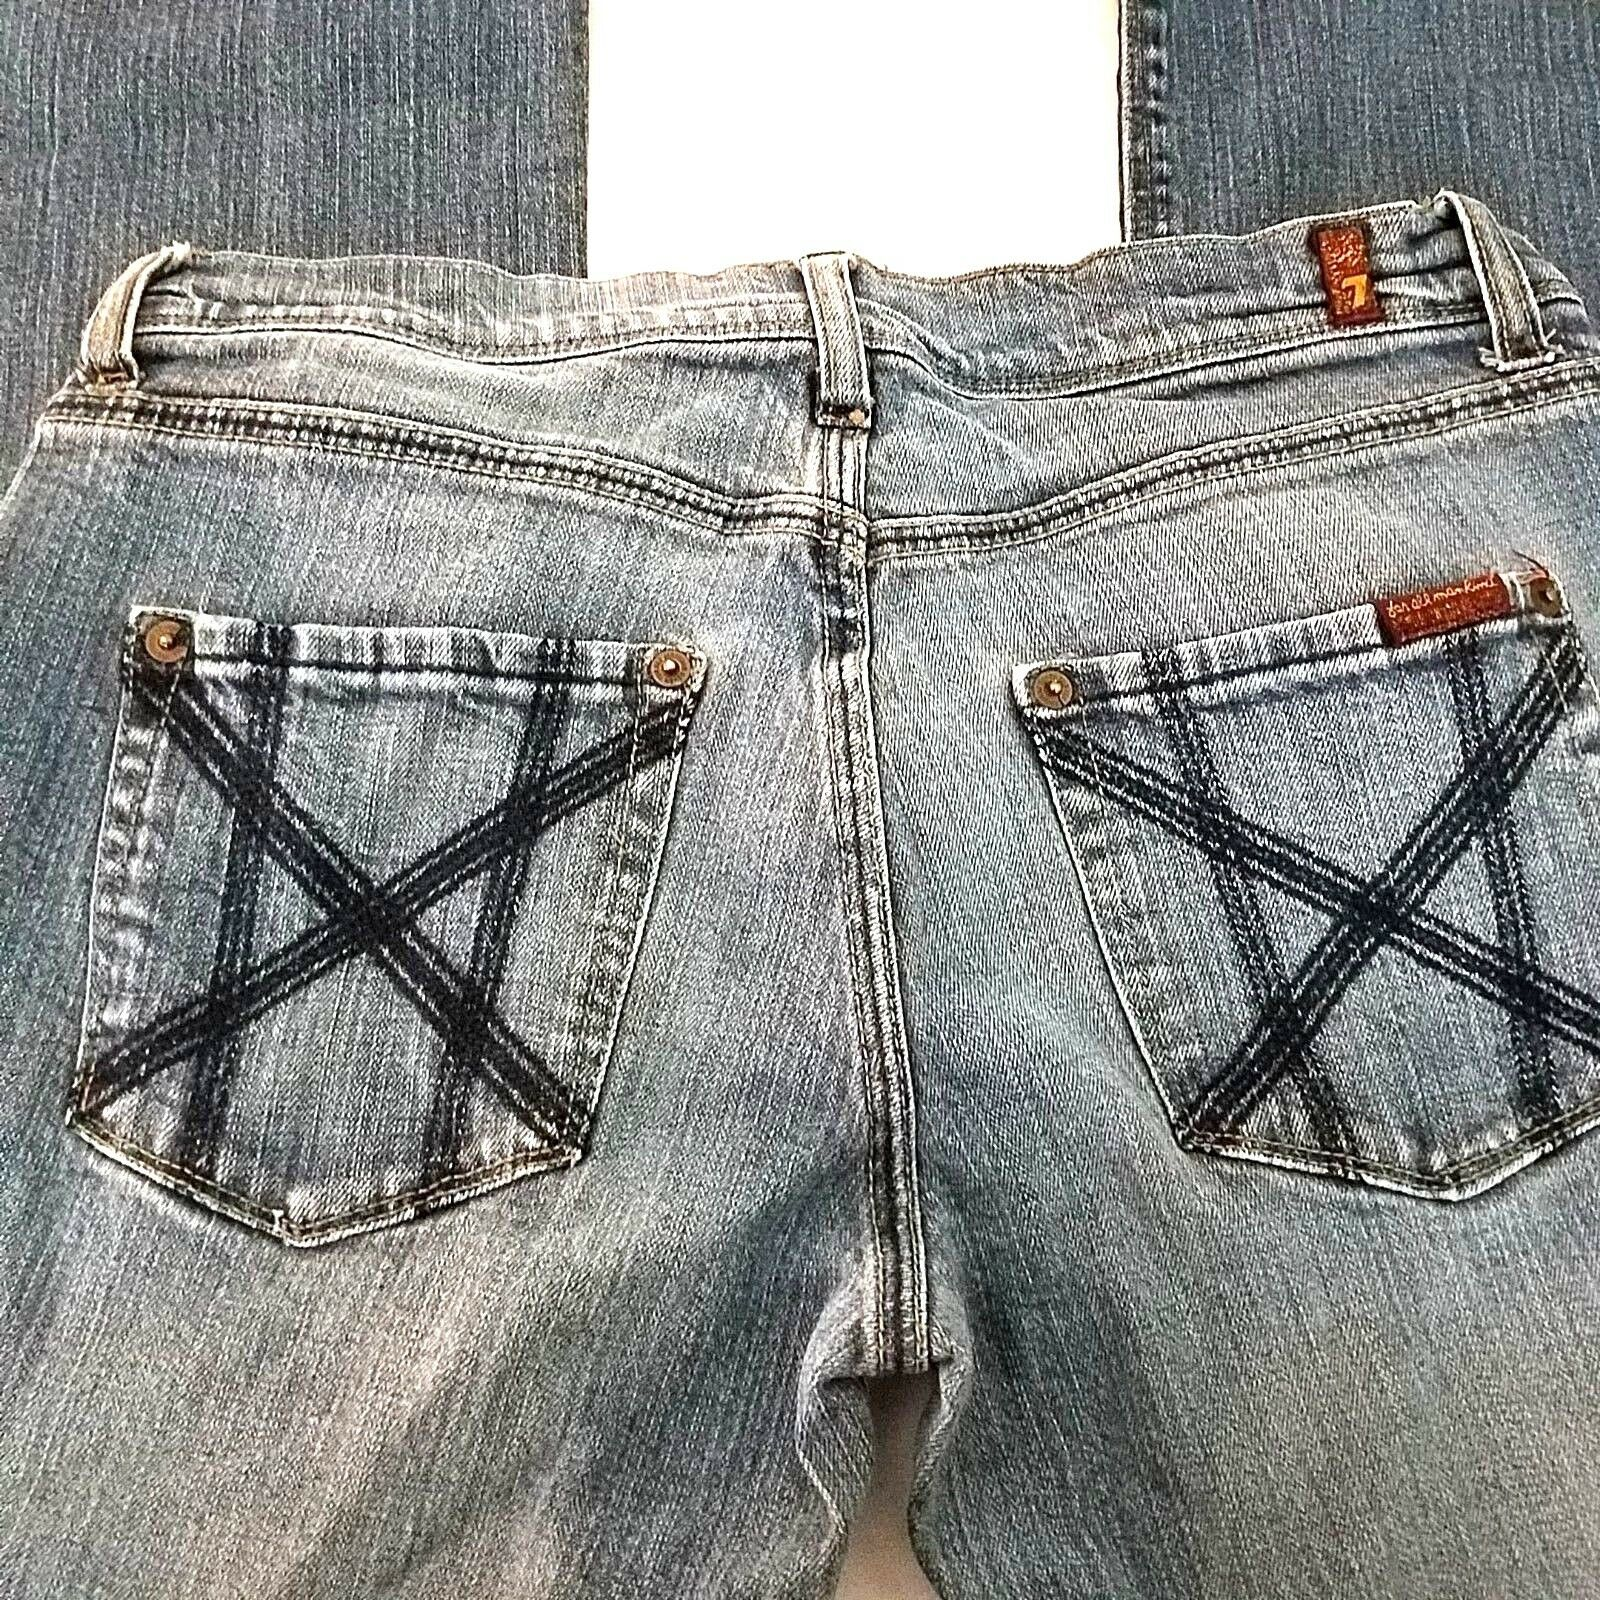 7 For All Mankind Mia Jeans 28 Bootcut Medium Wash Mid Rise Stretch